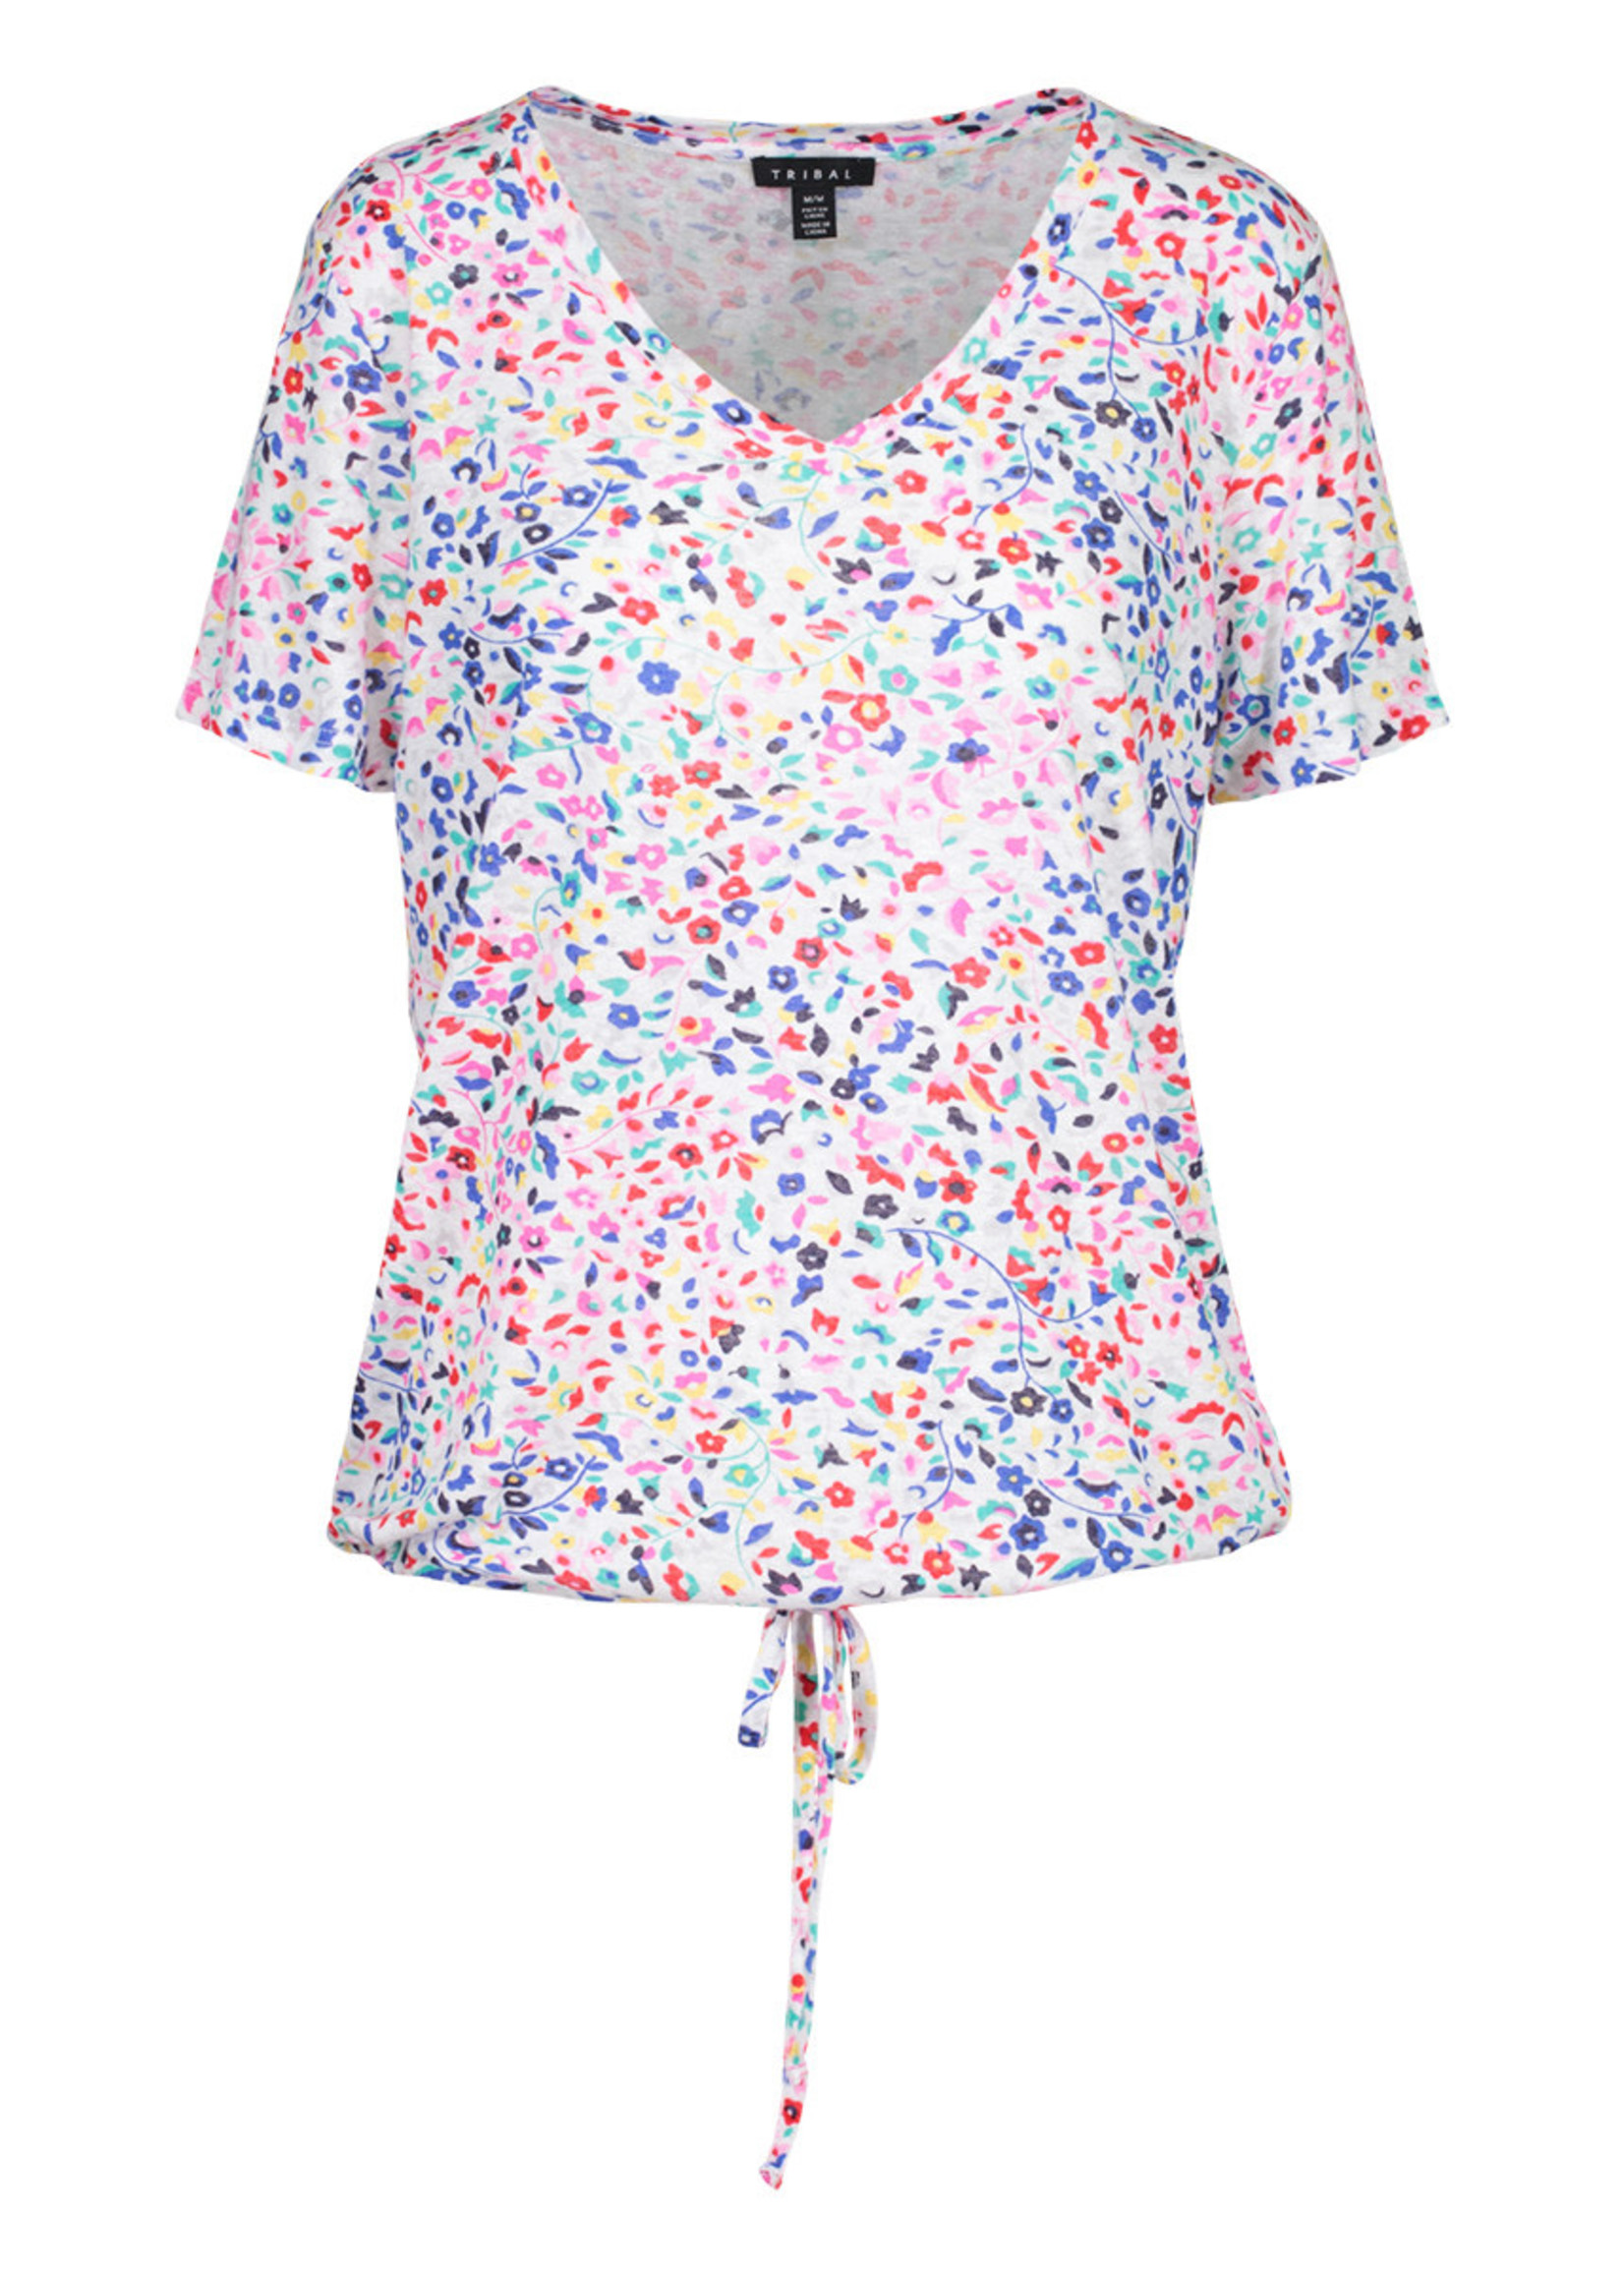 V-neck Top With Drawstring